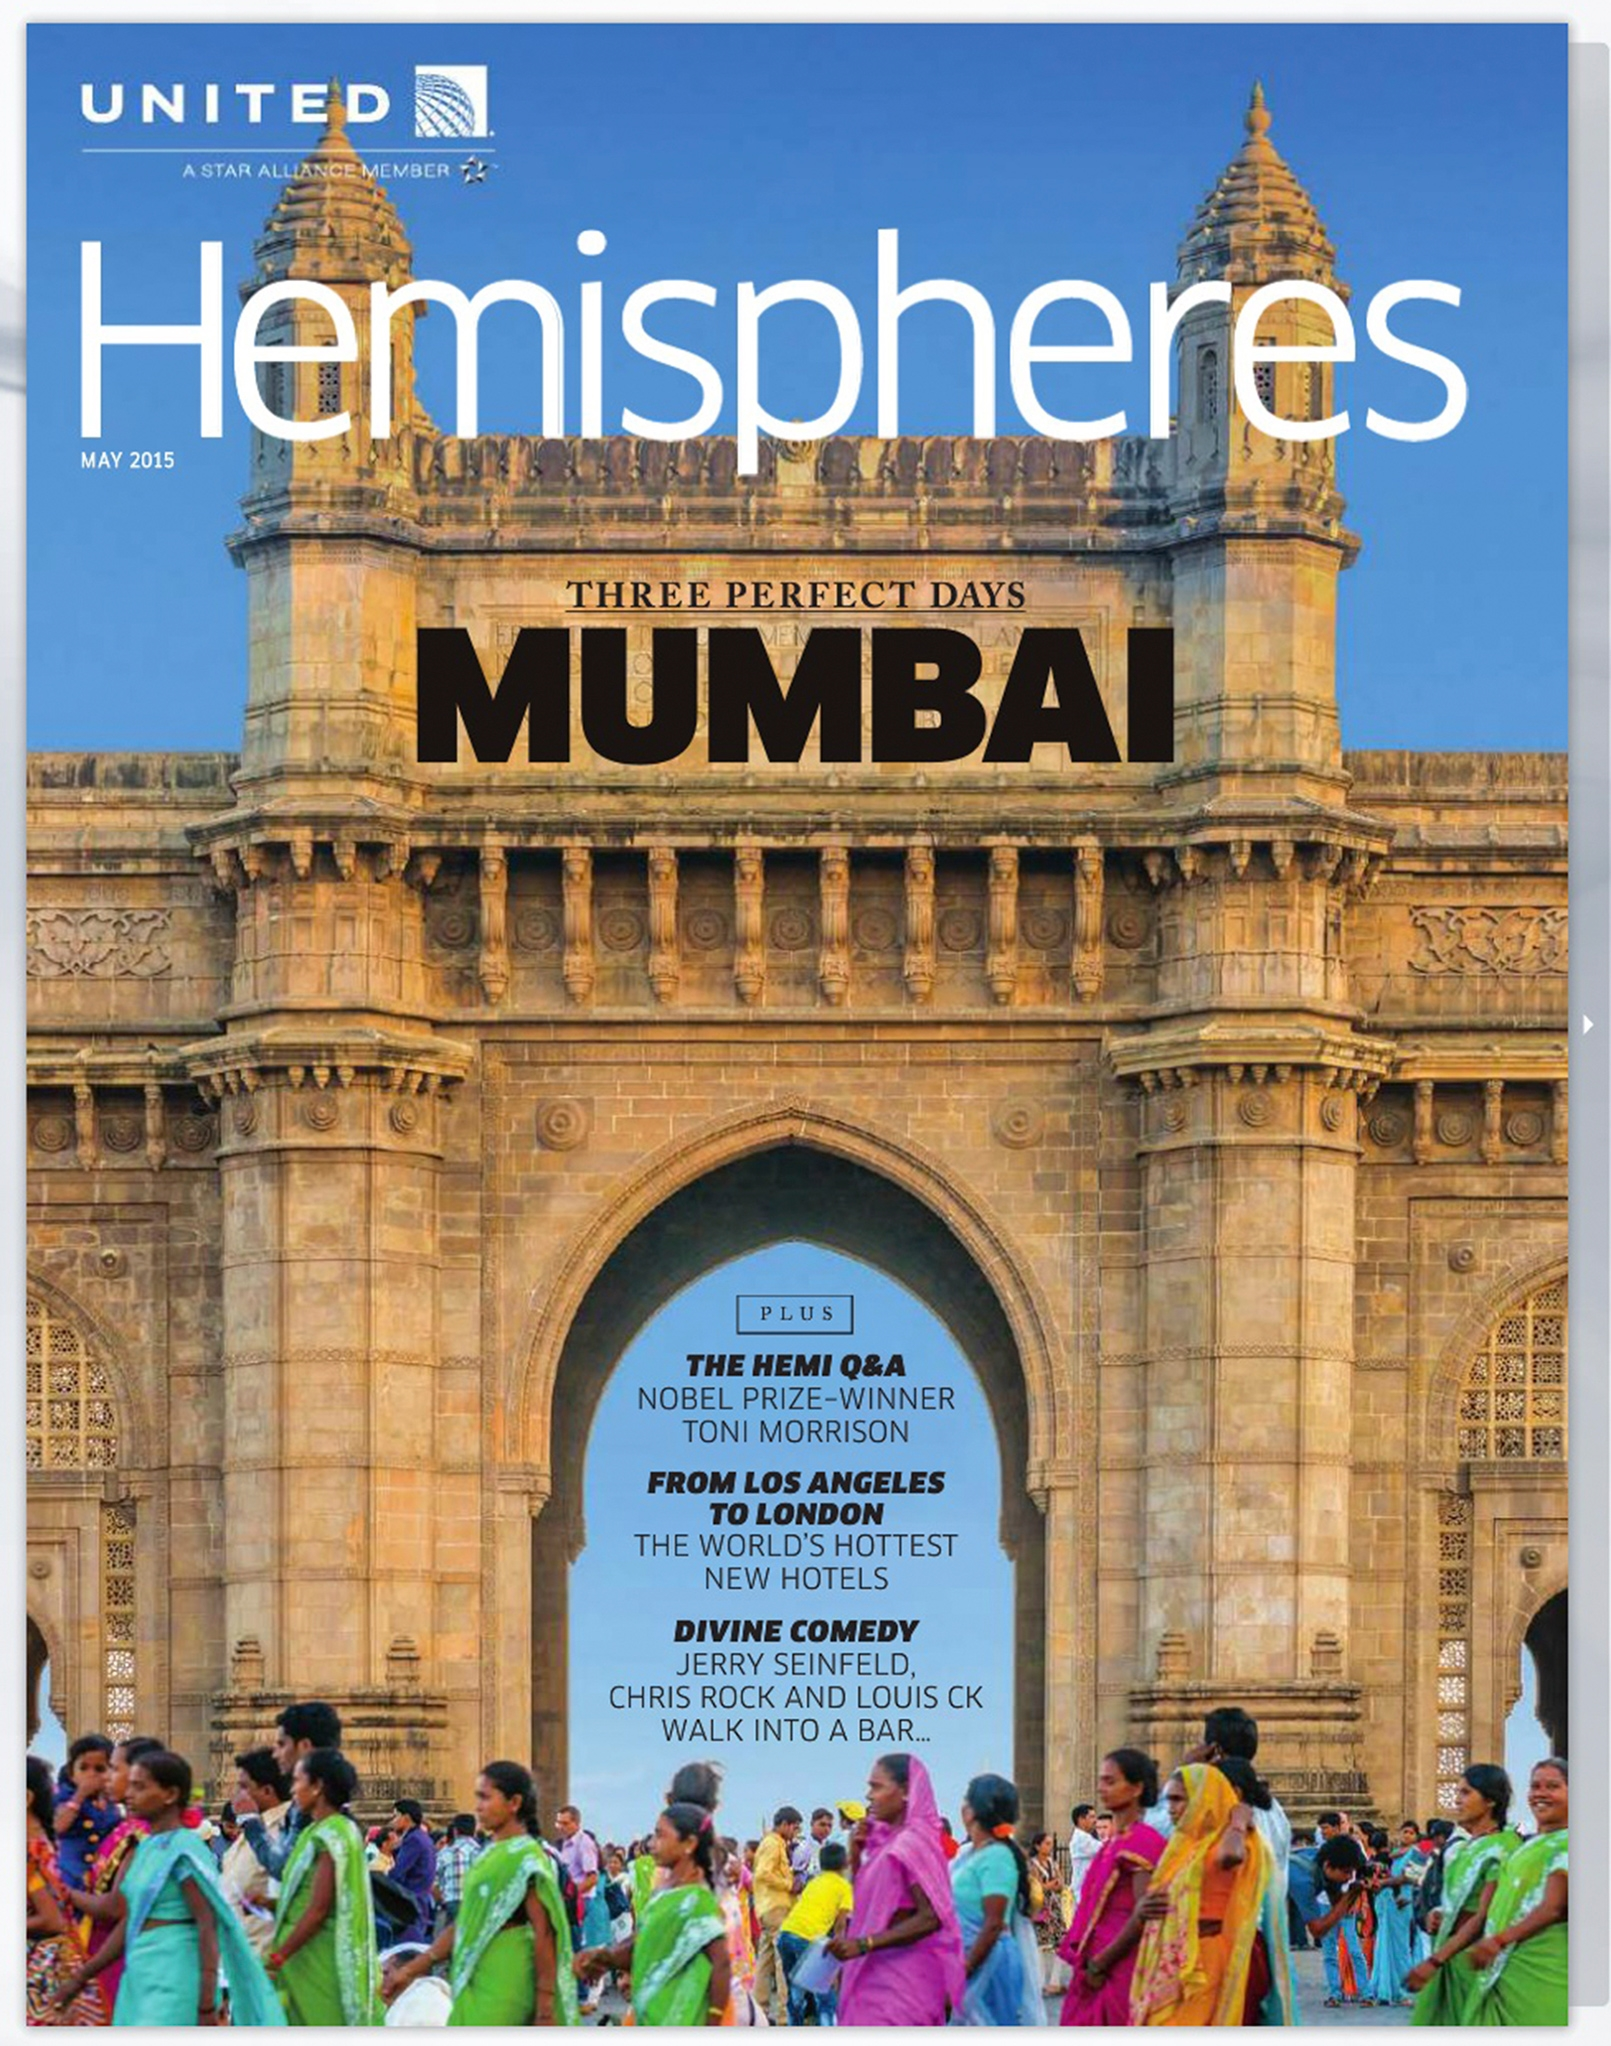 United Airlines Hemispheres Cover